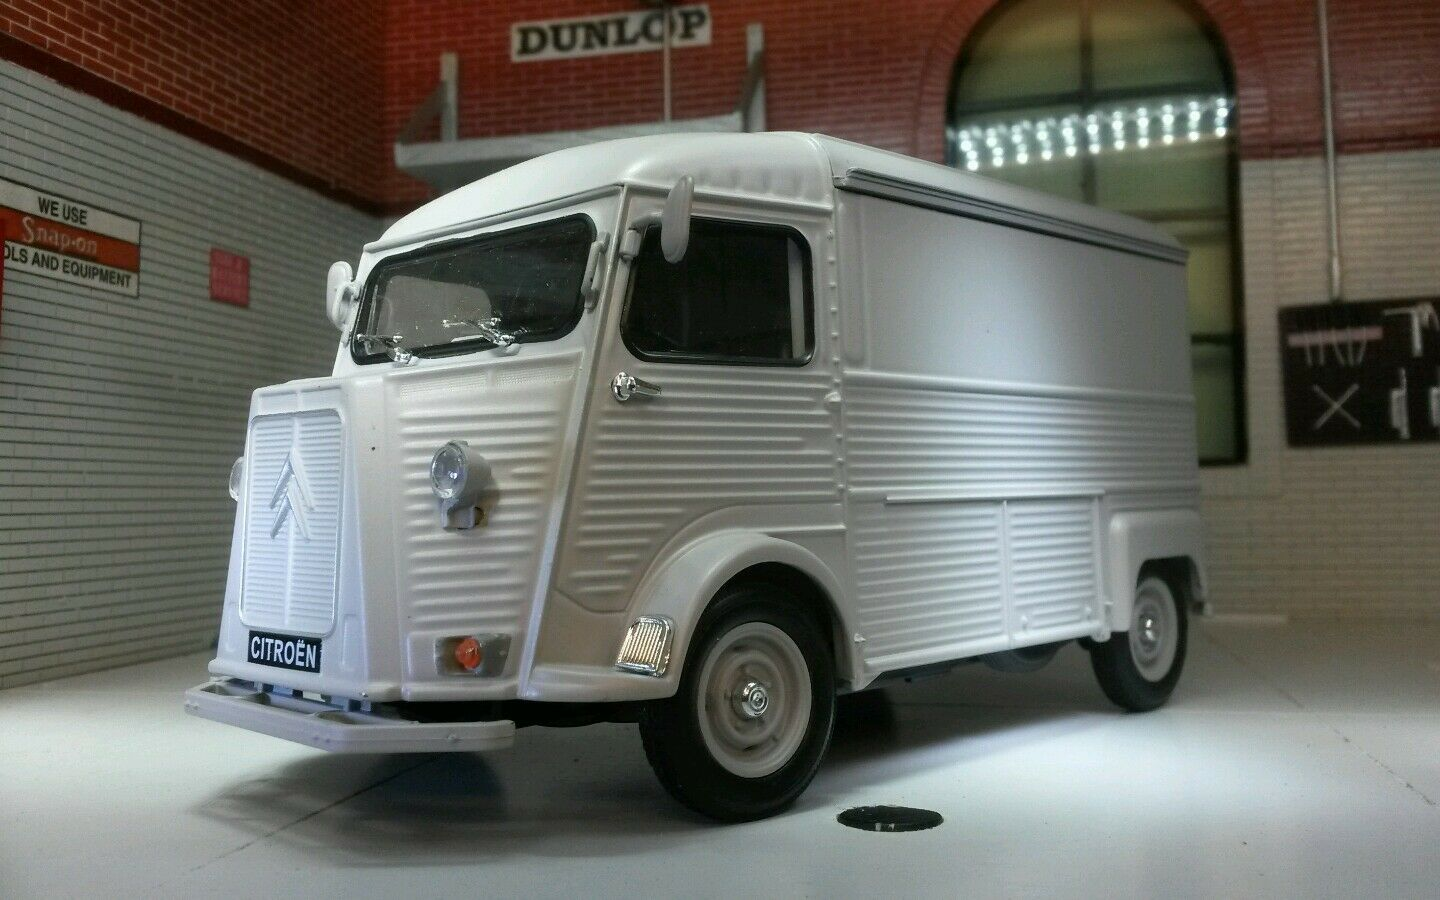 Citroen H Type Catering Trailer Van 1 24 Scale Very Detailed Model 24019 Grey